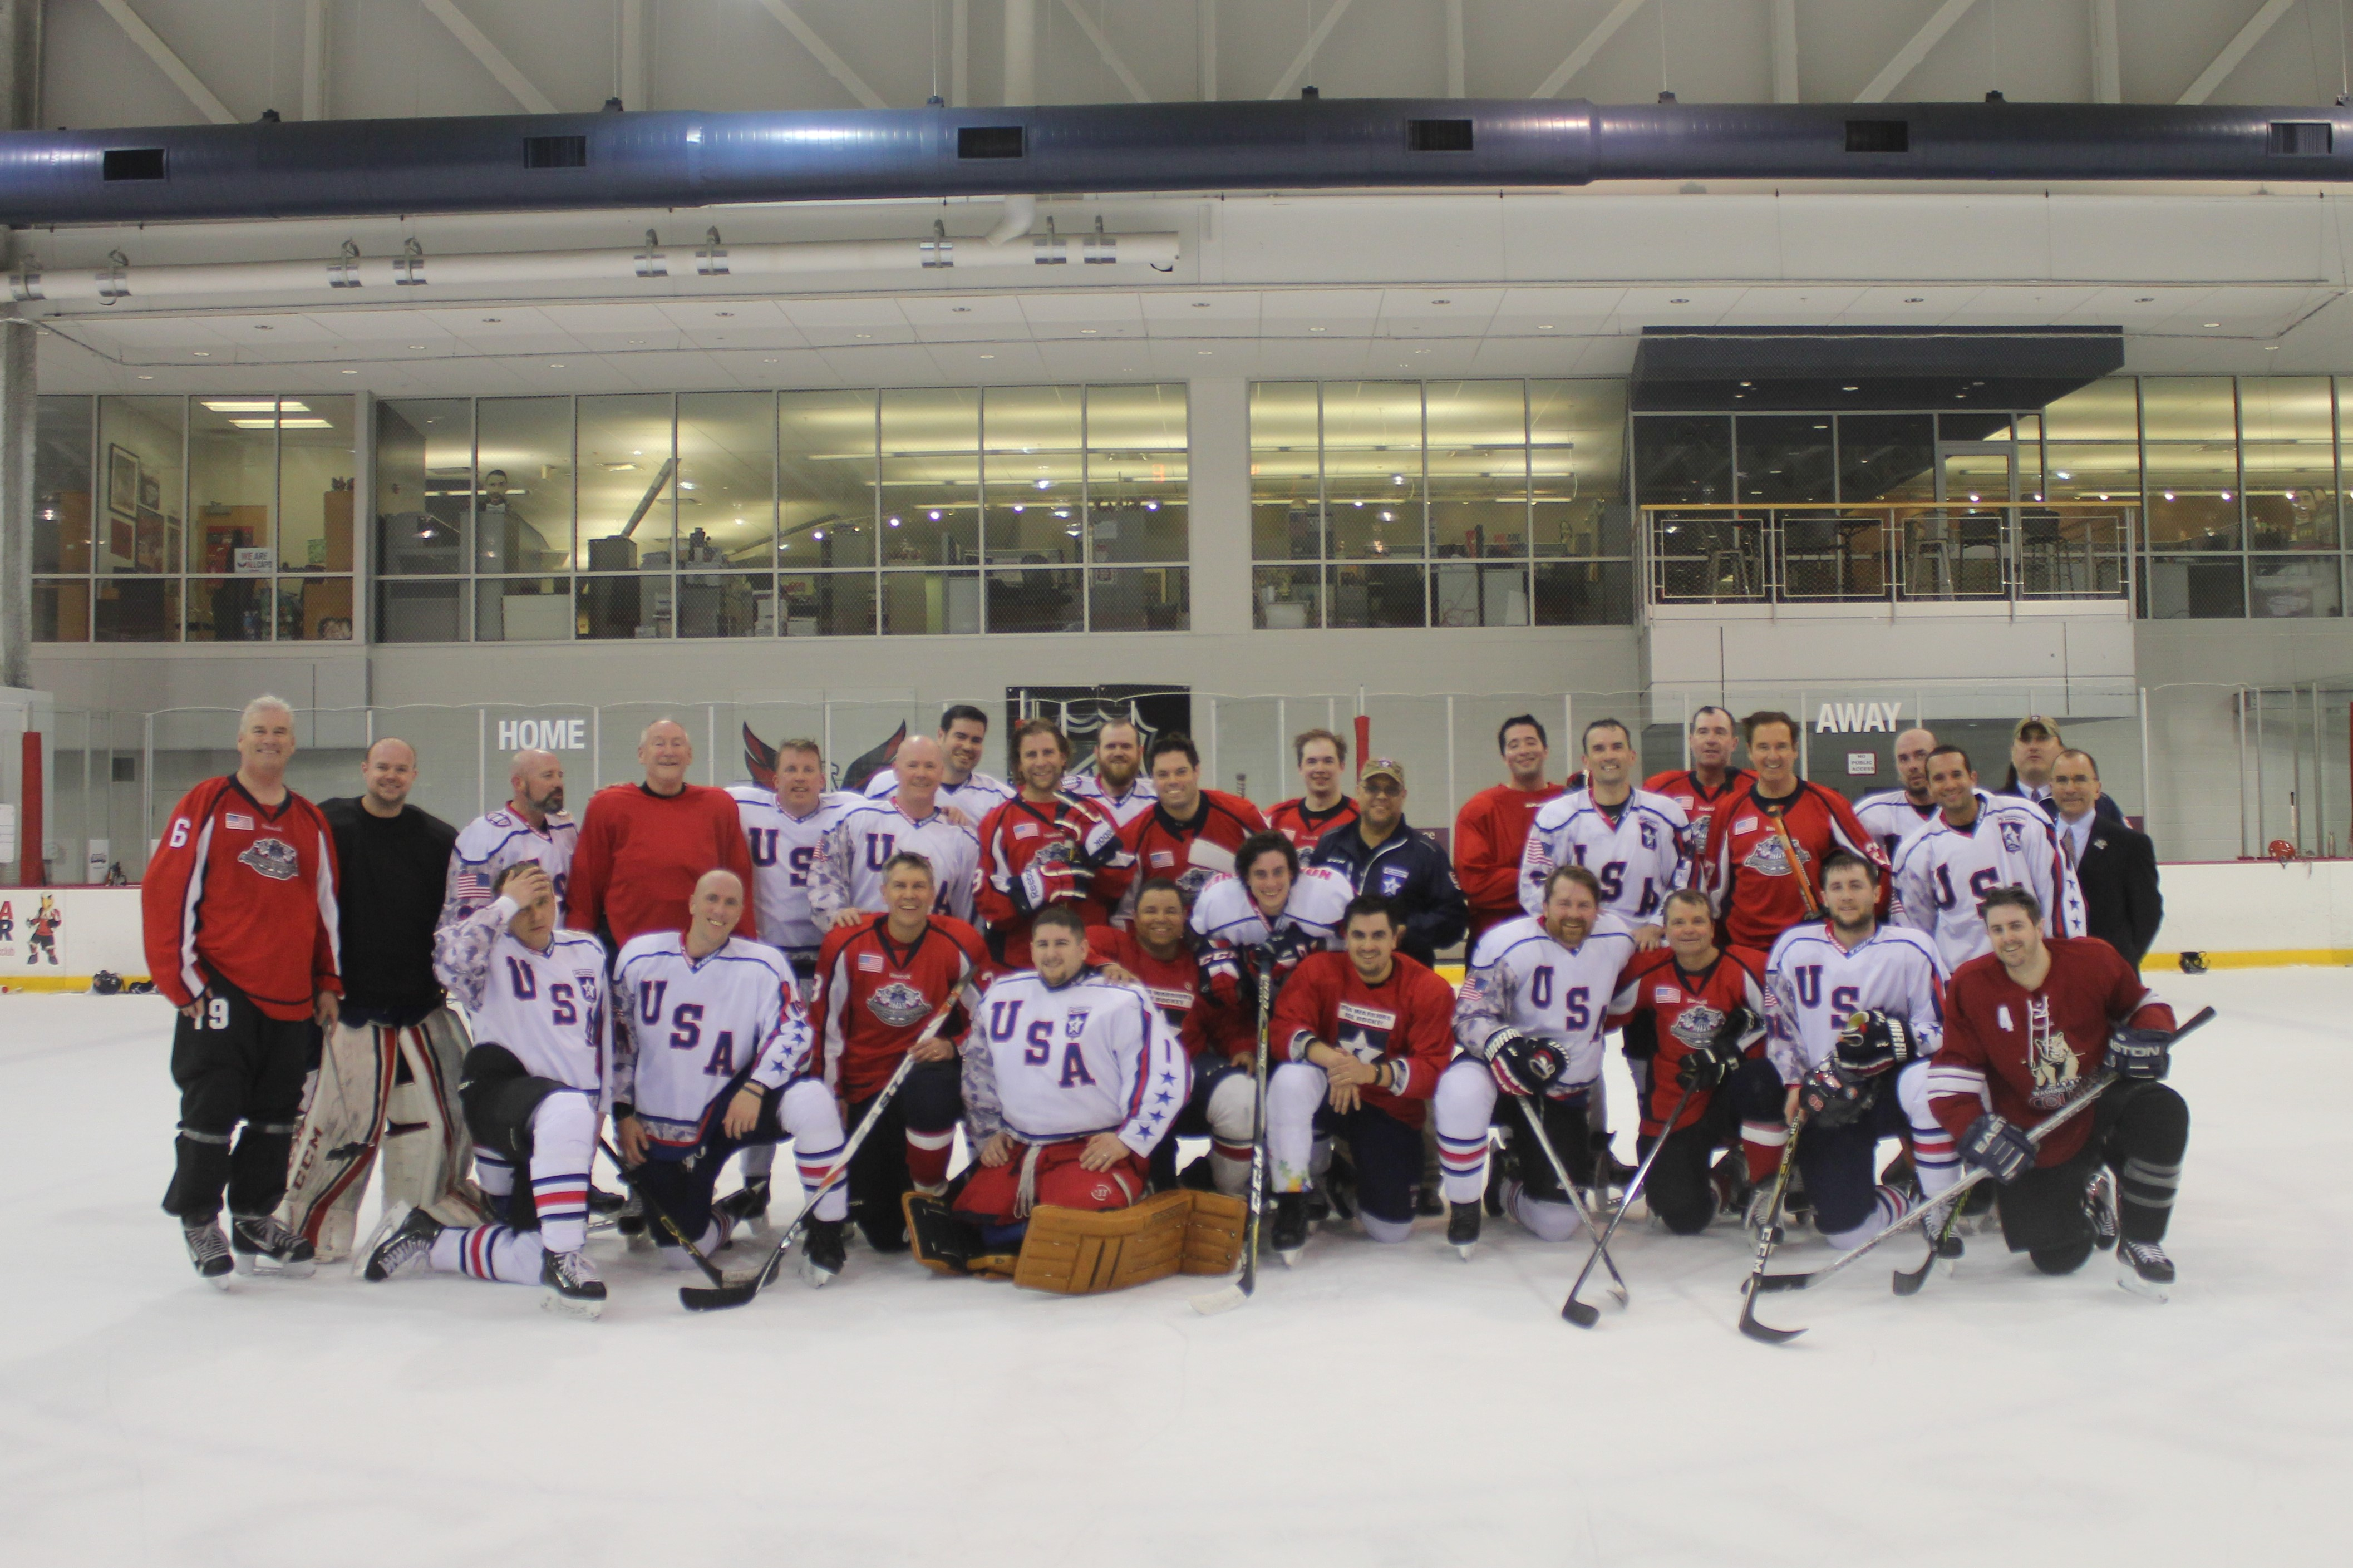 Rep. Mike Quigley poses with the USA Warriors hockey team after a match.